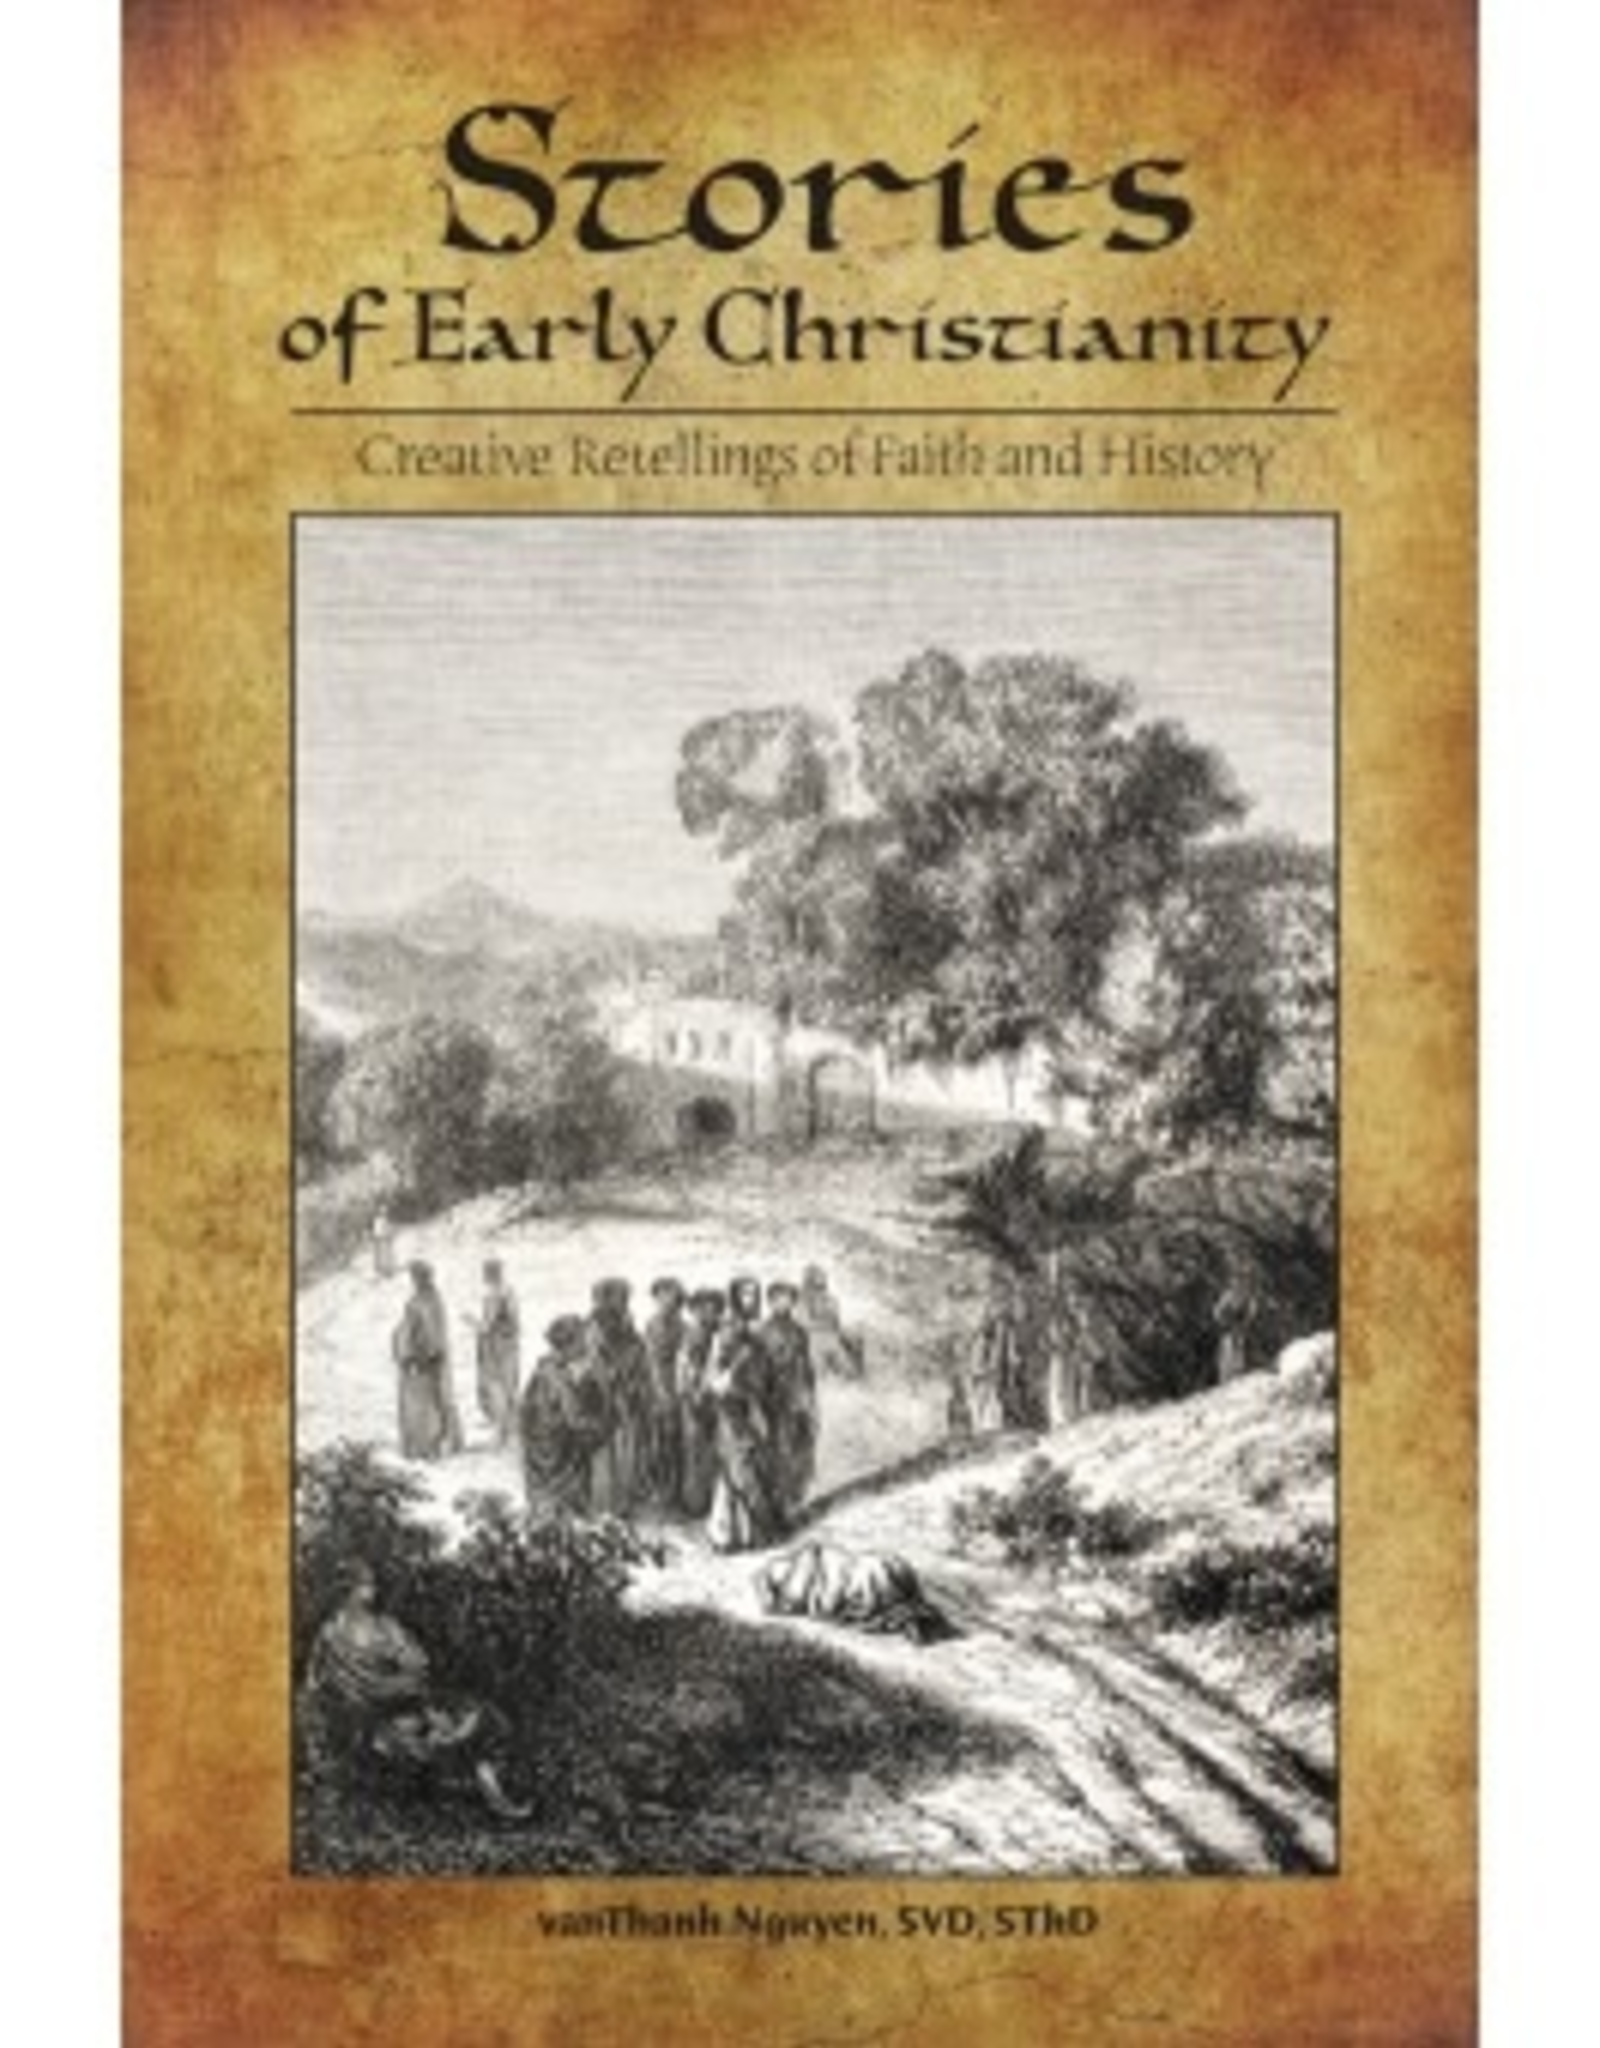 Liguori Stories of Early Christianity:  Creative Retellings of Faith and History, by vanThanh Nguyen (paperback)